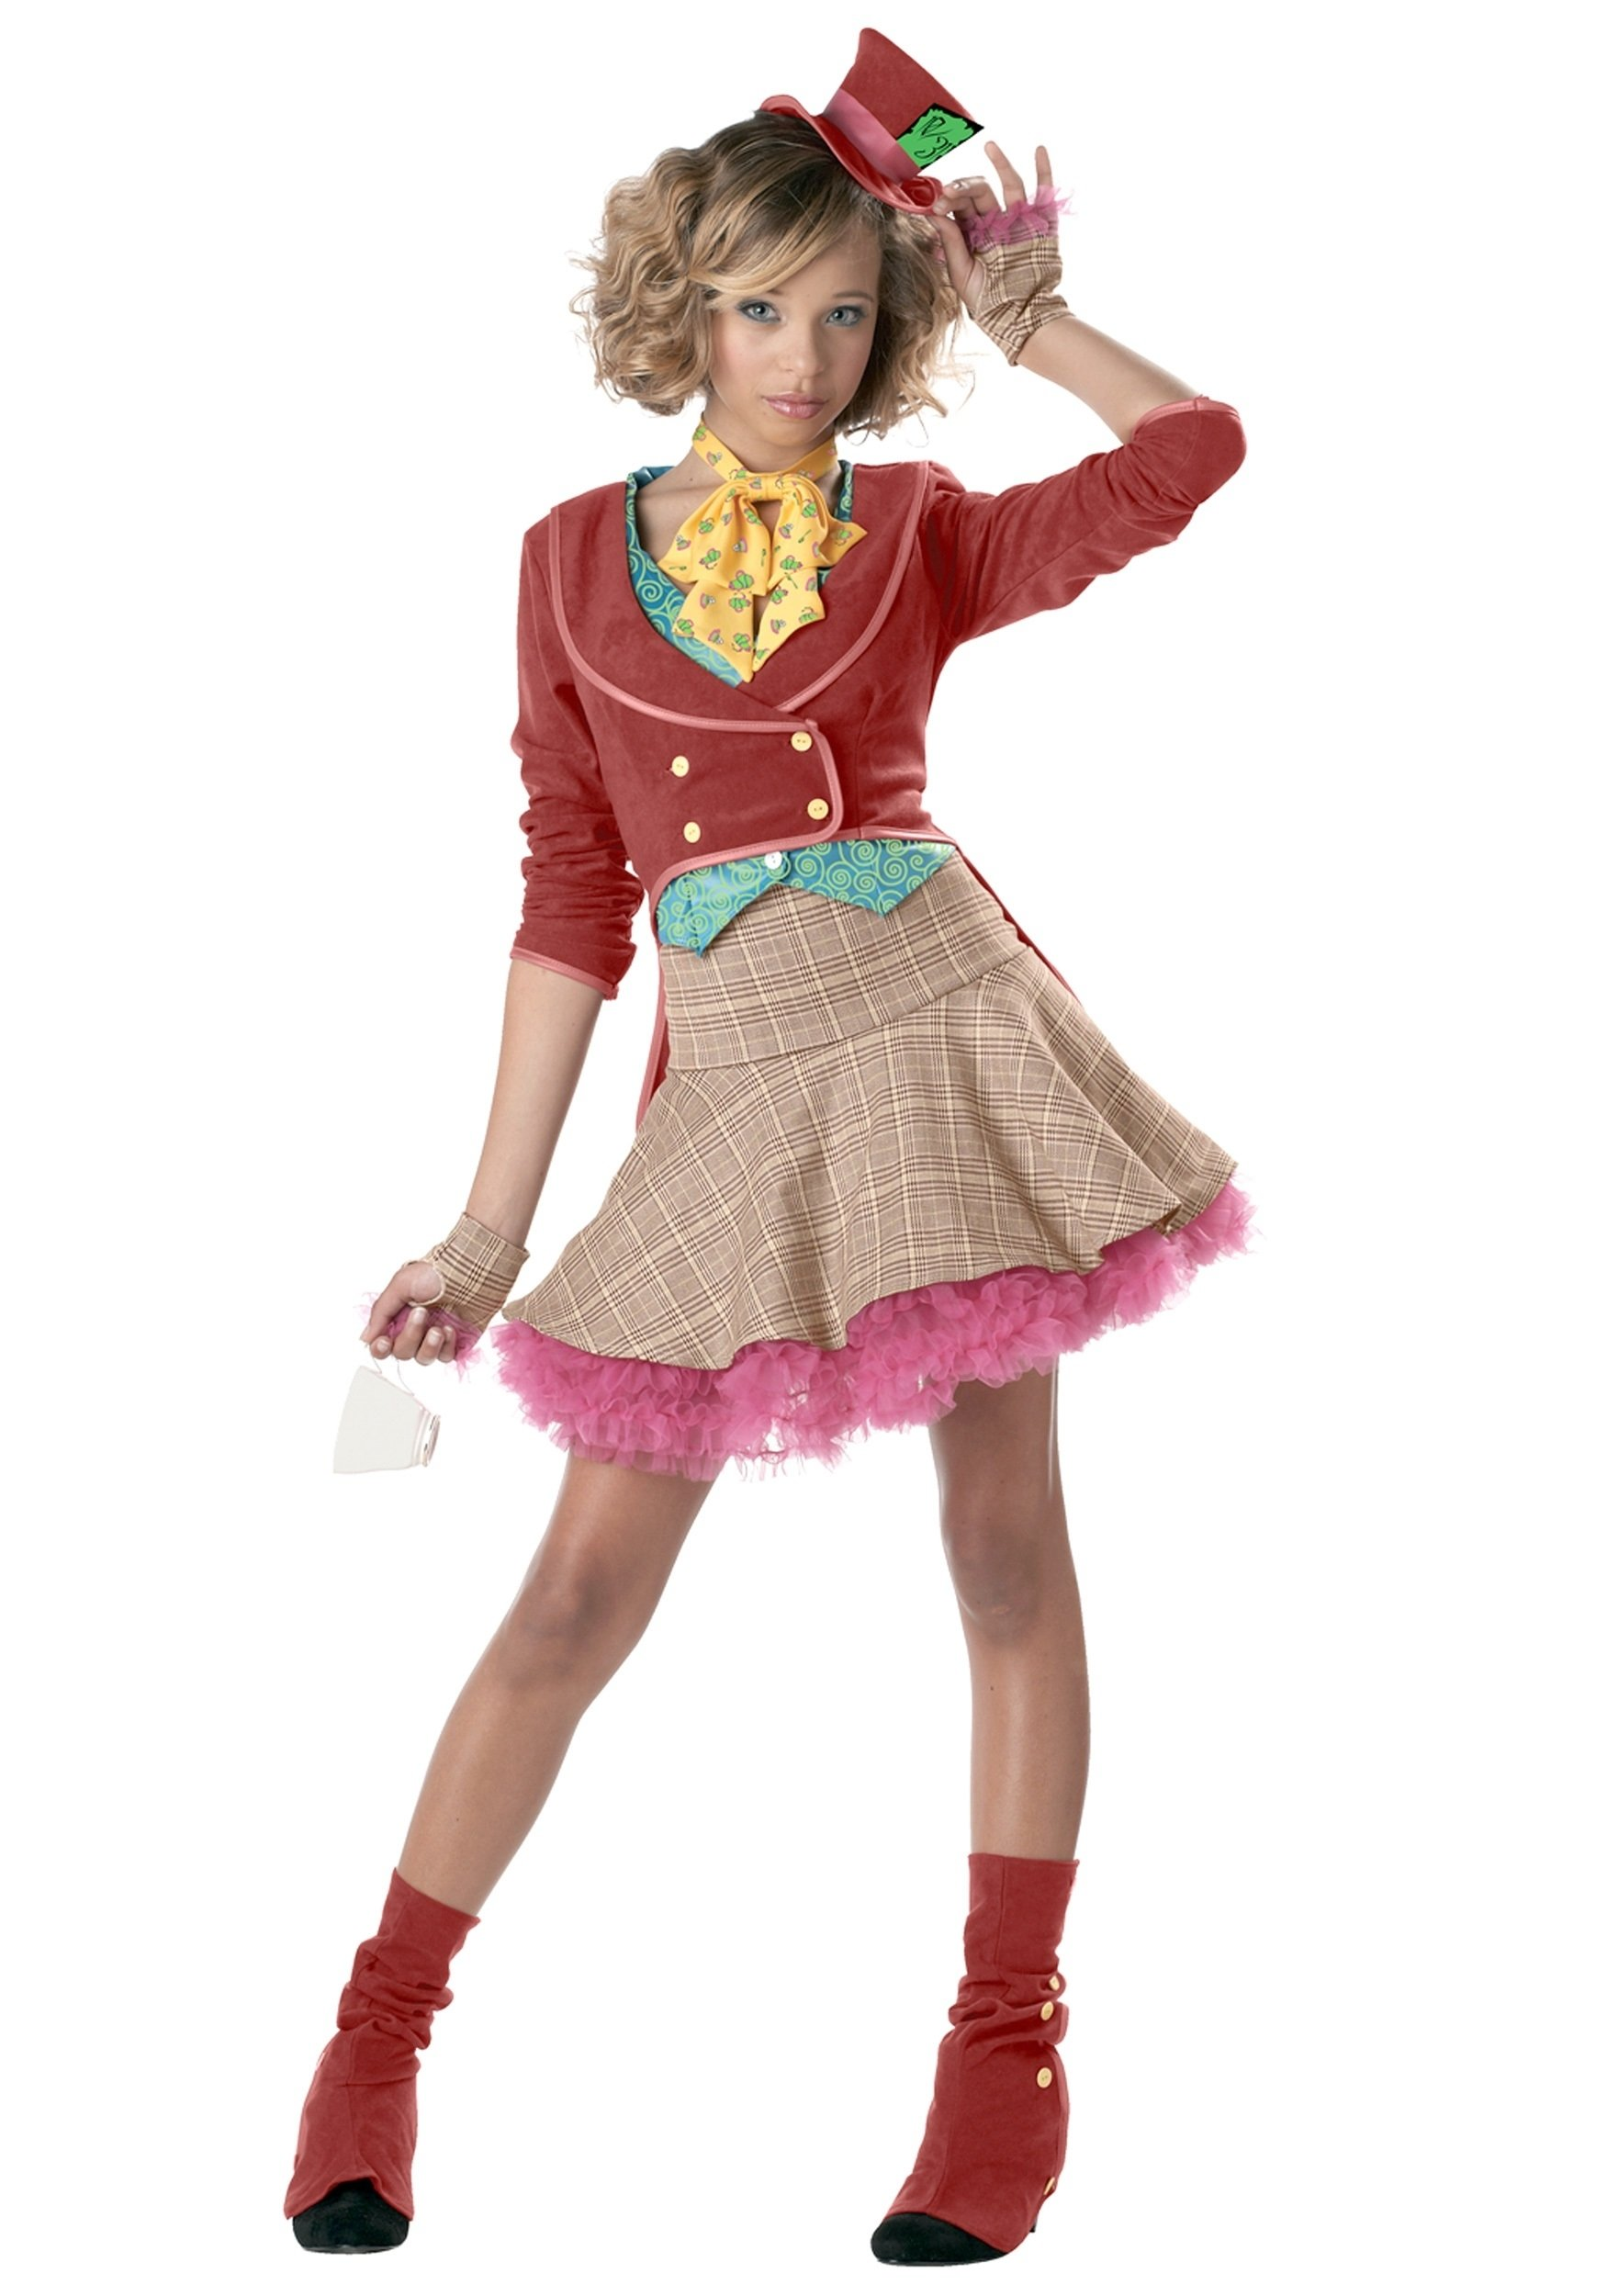 10 Awesome Good Costume Ideas For Teenage Girls teen girls mad hatter costume 4 2020